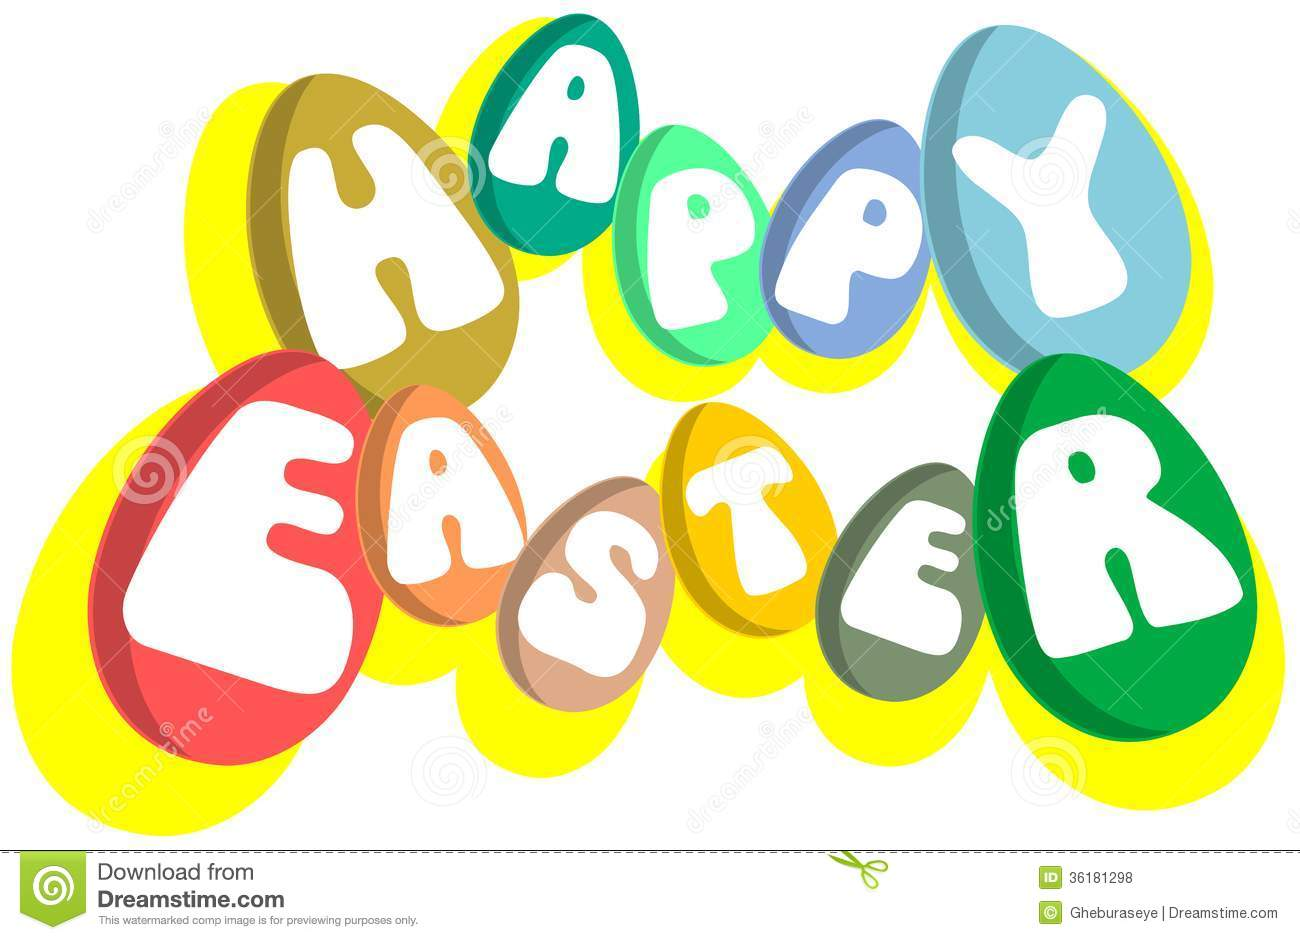 Easter Greeting Words Images Greetings Card Design Simple